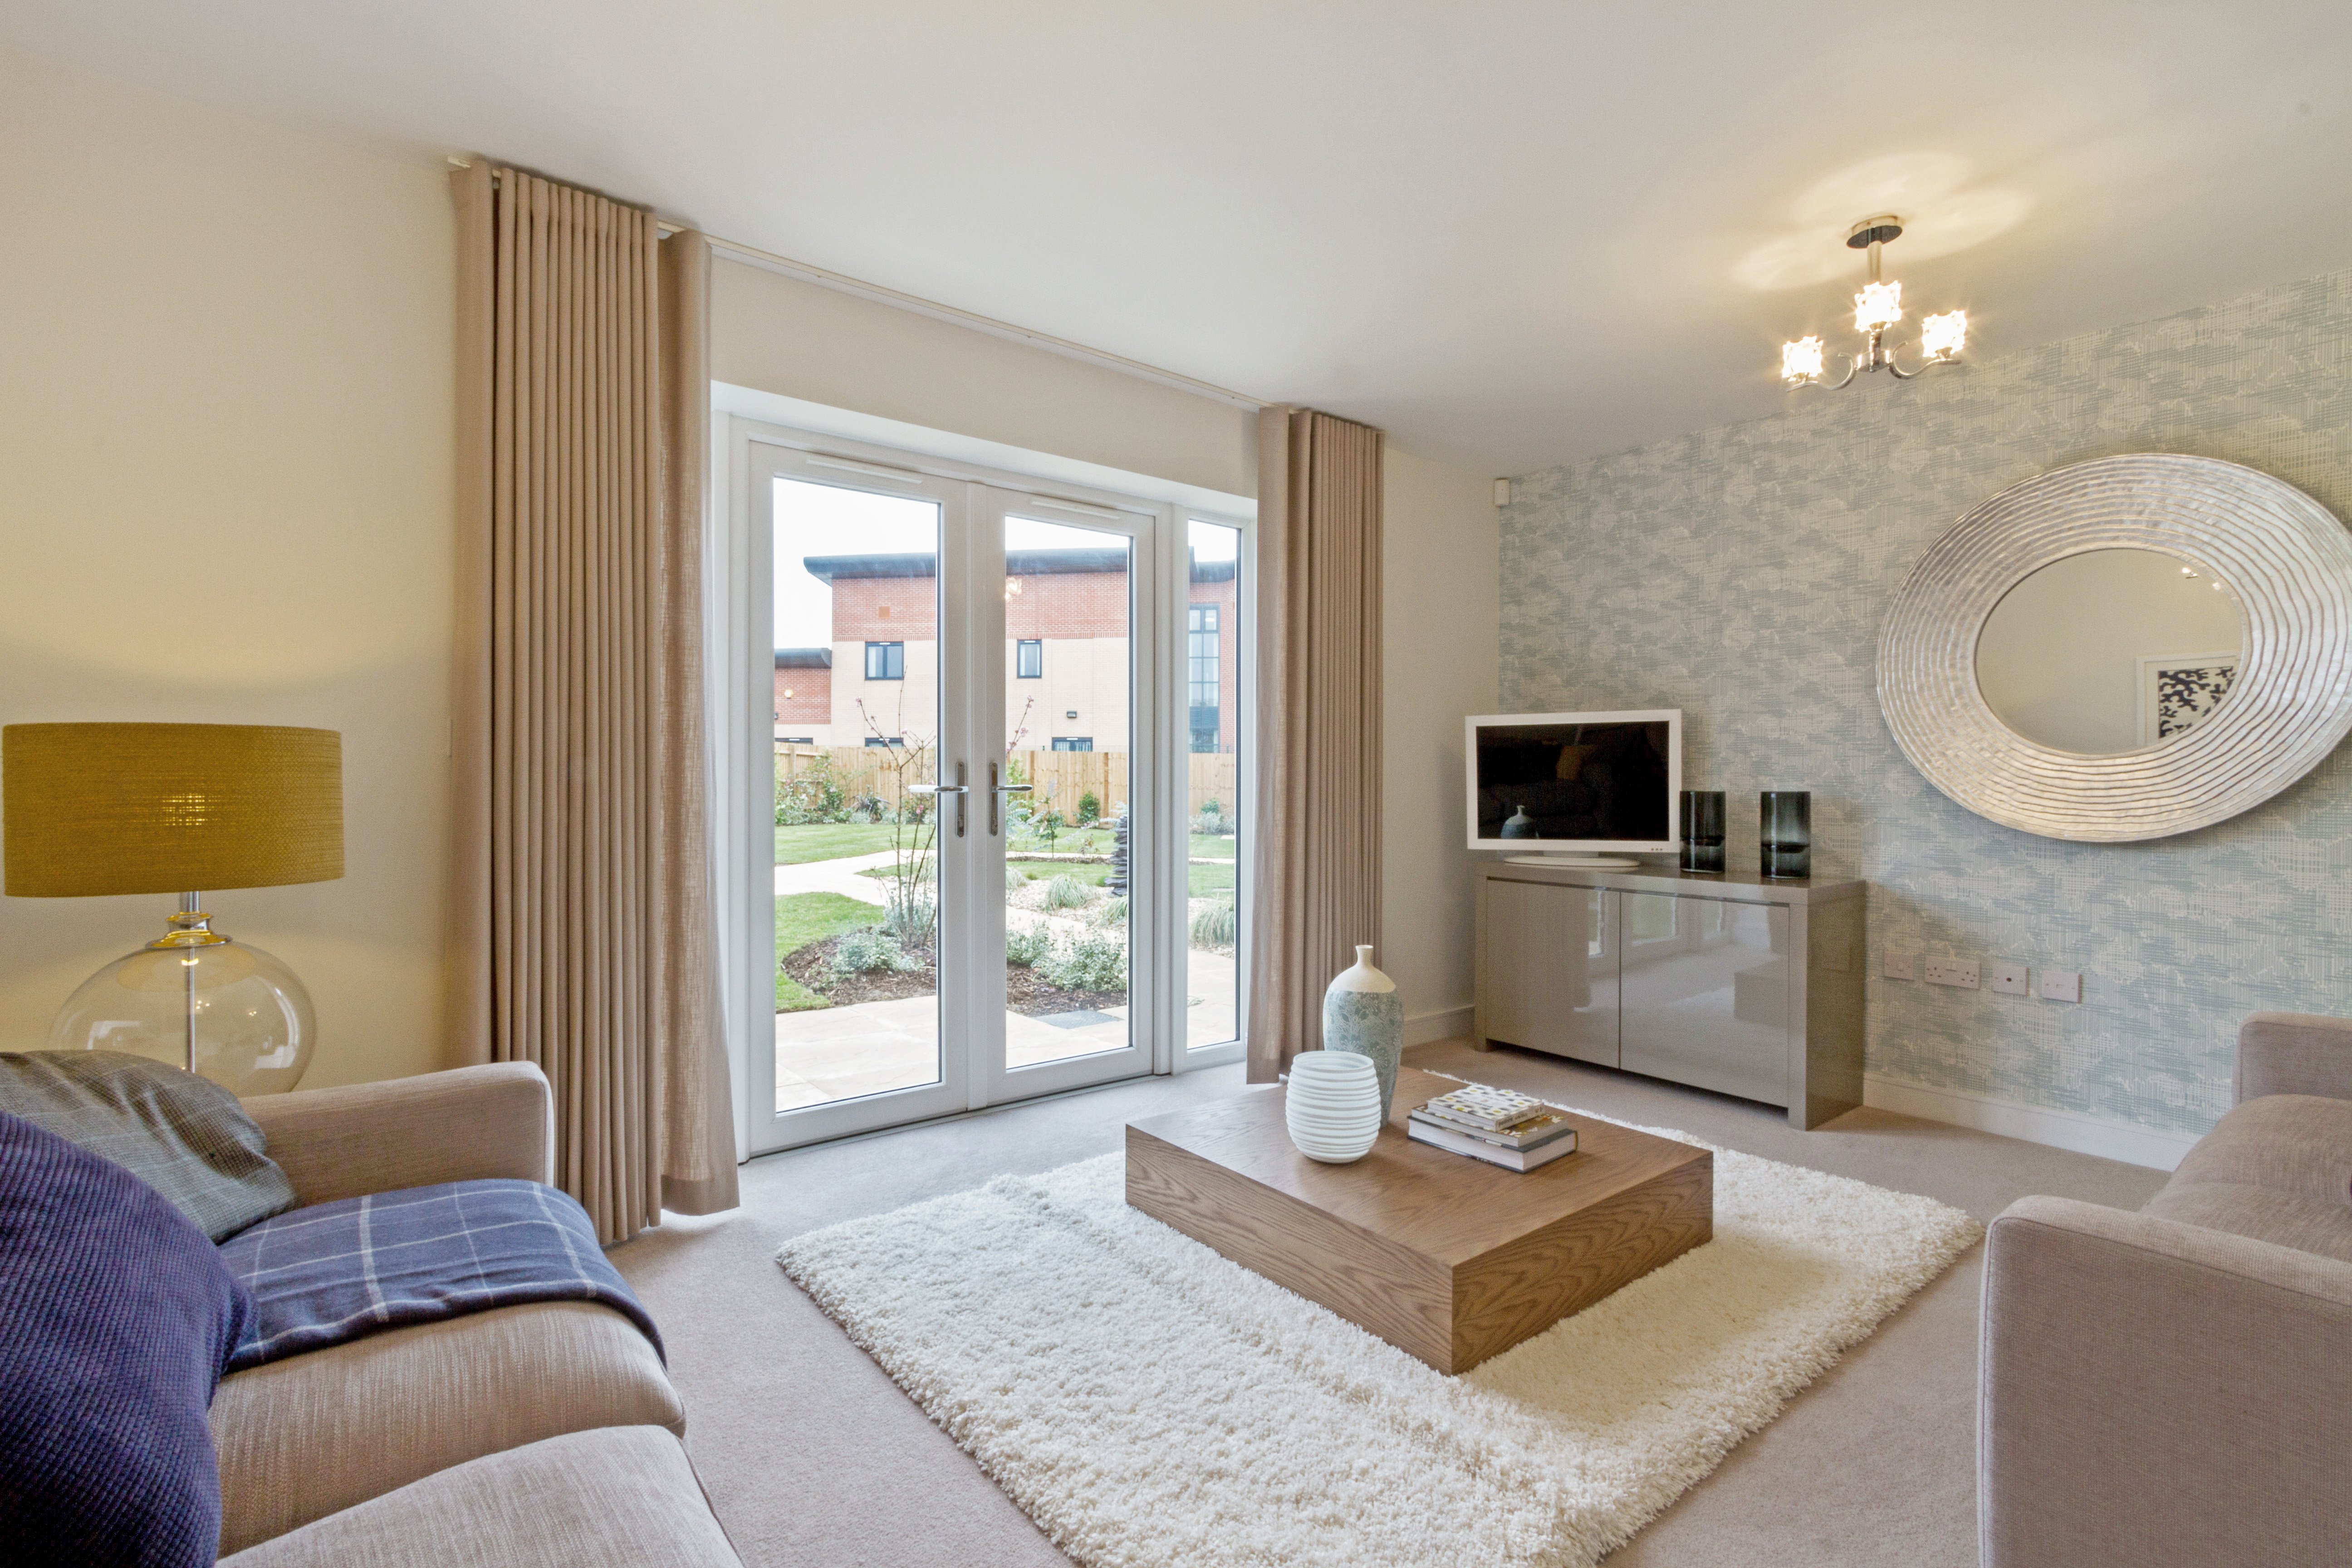 2 bedroom home in brownhills ws8 6er all the web pictures compilation 2 bedroom house